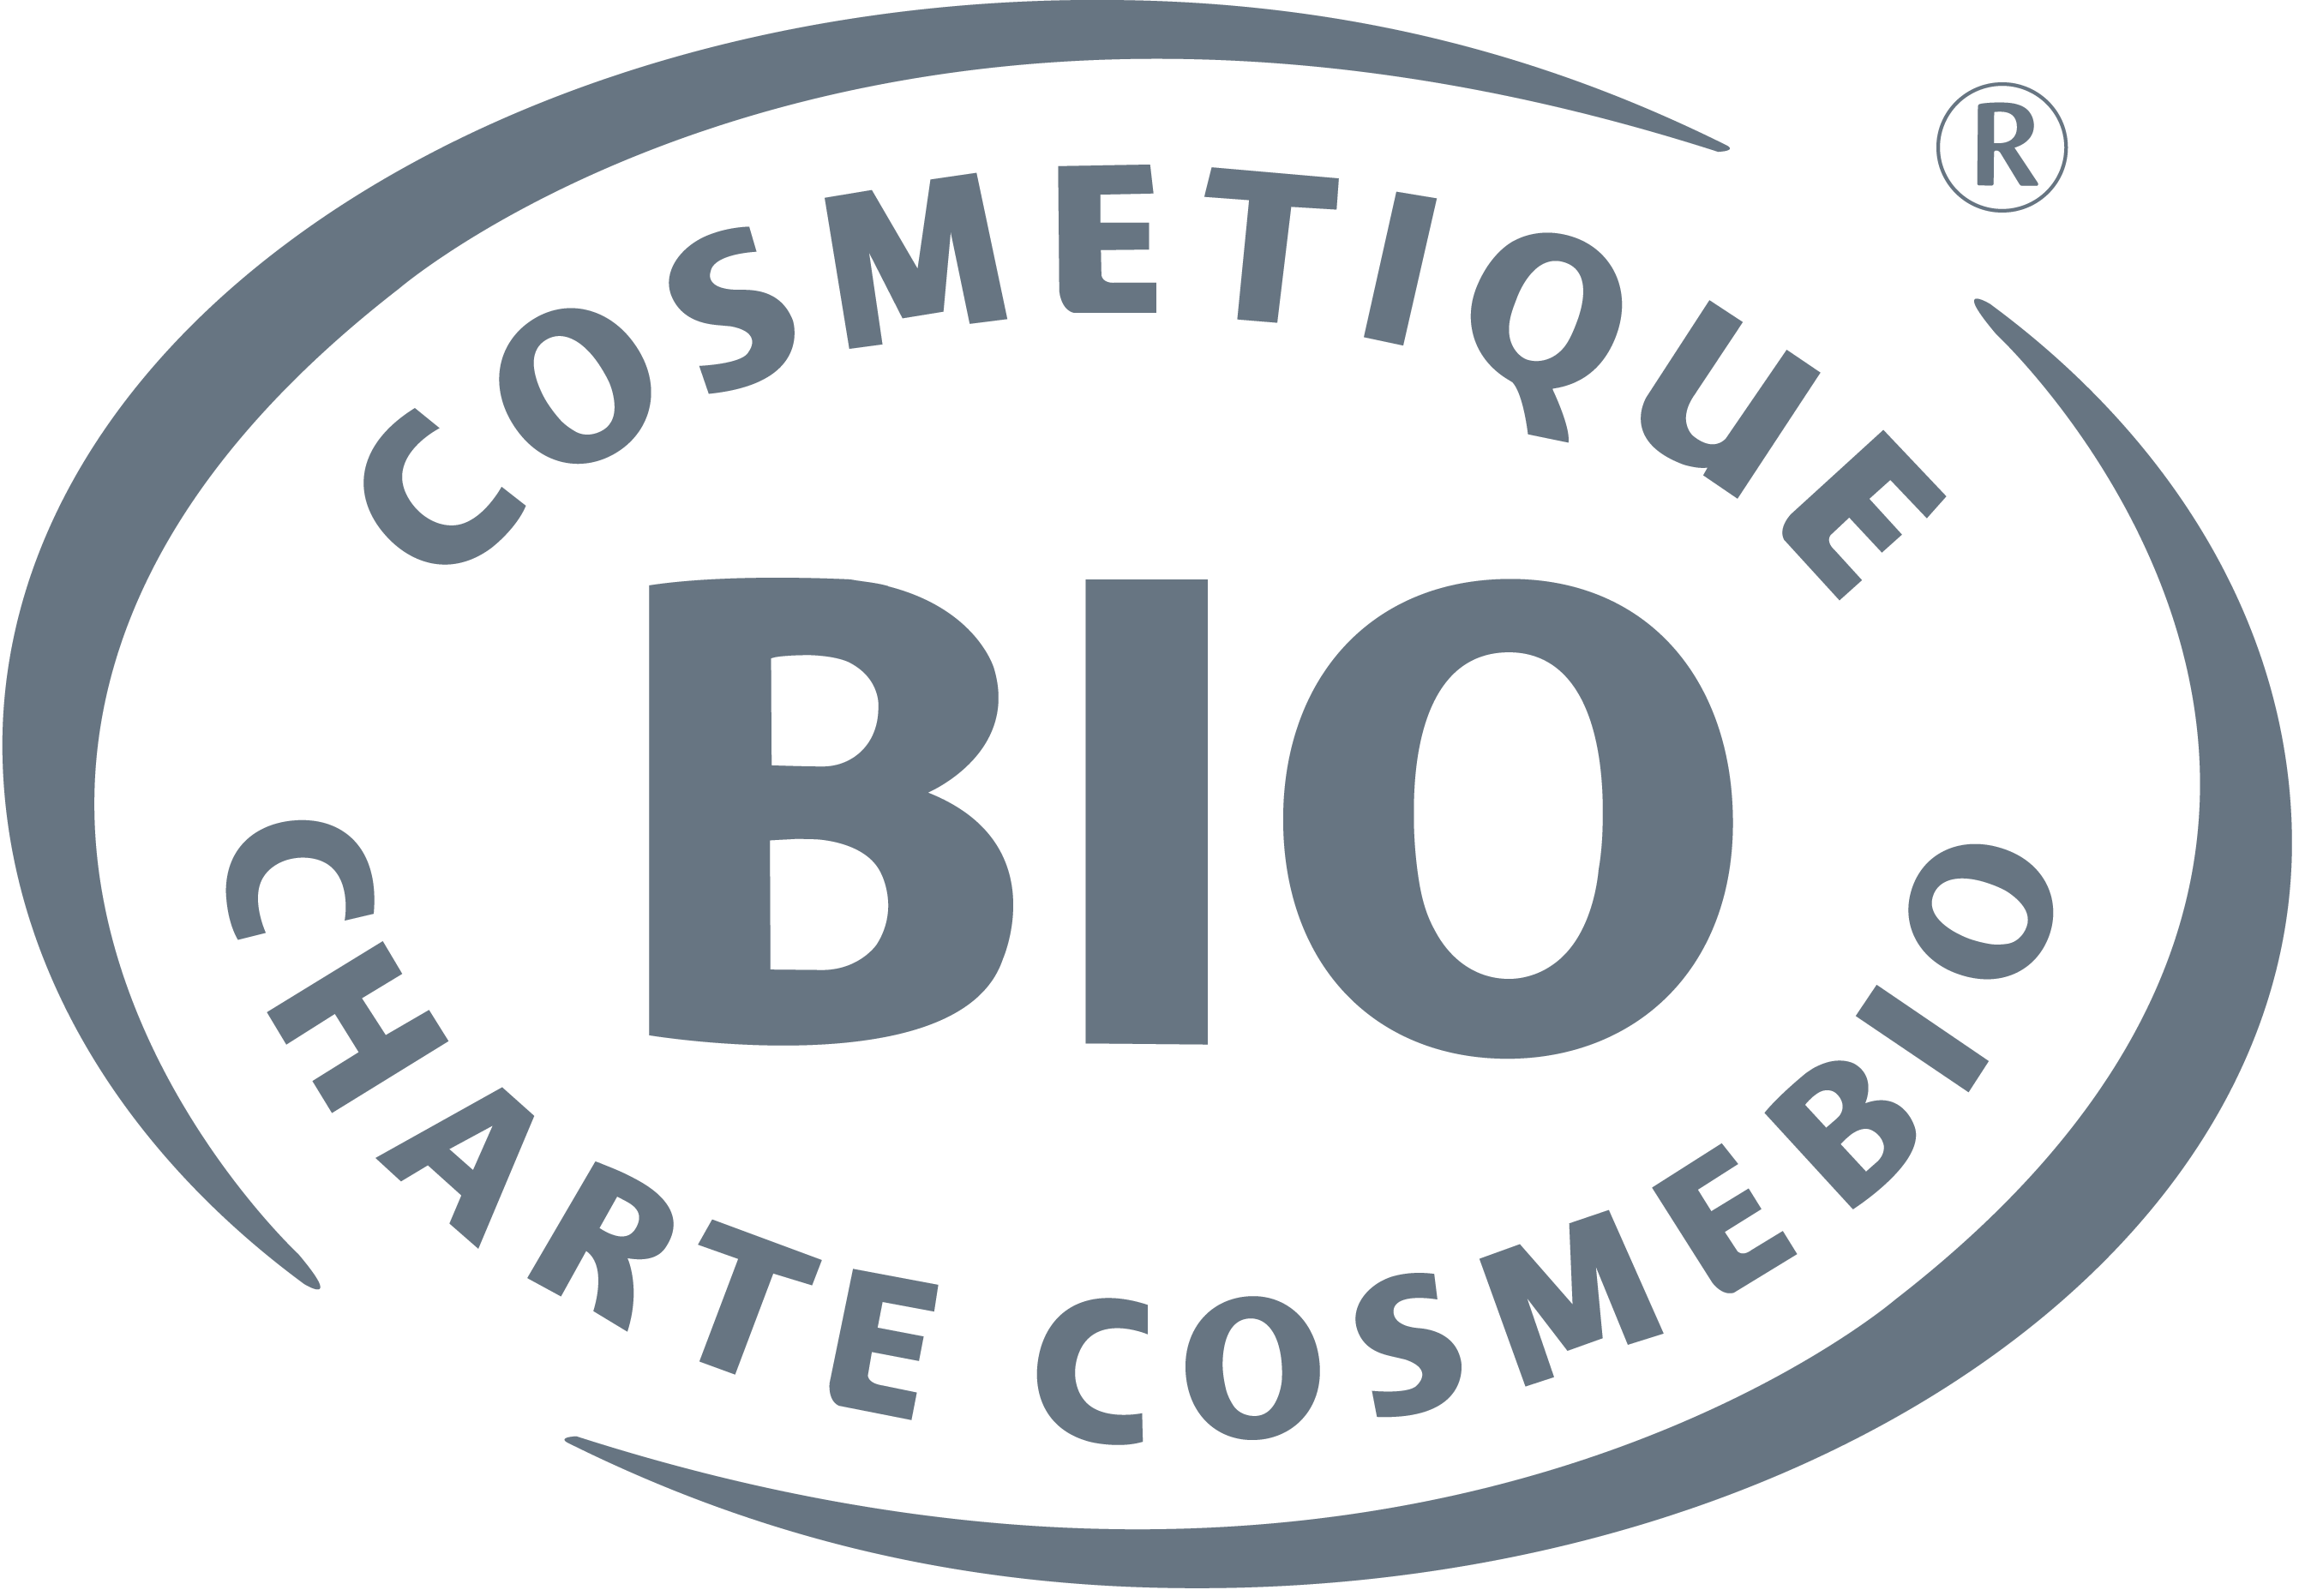 http://s634567611.onlinehome.fr/wp-content/uploads/2017/09/label_cosme_bio-100xauto.png